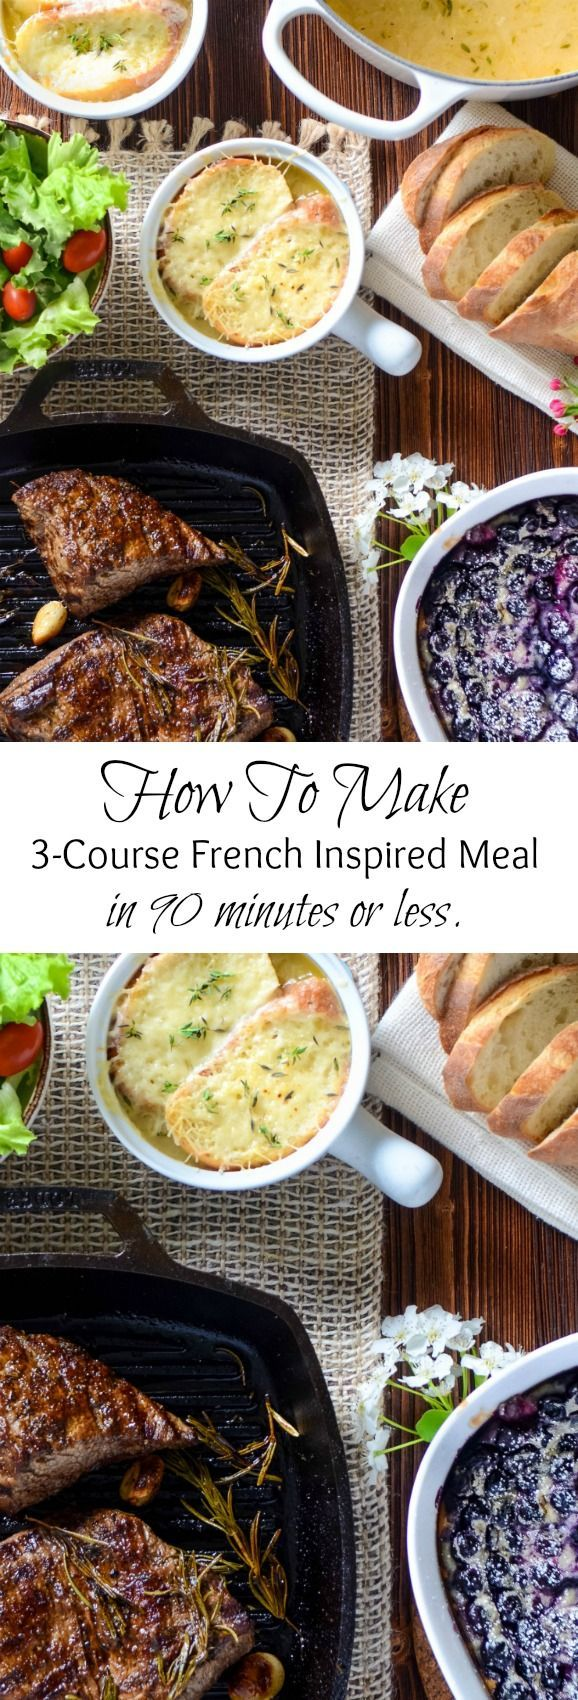 Prepare to have the best feast of your life! With my Easy French Dinner Recipes you'll immerse in an atmosphere of classic French cuisine and try the best French recipes that are sure to become your favorite! Steak Chateaubriand is such an easy recipe, you'll be surprised. It tastes amazing and is sure to please your loved ones!